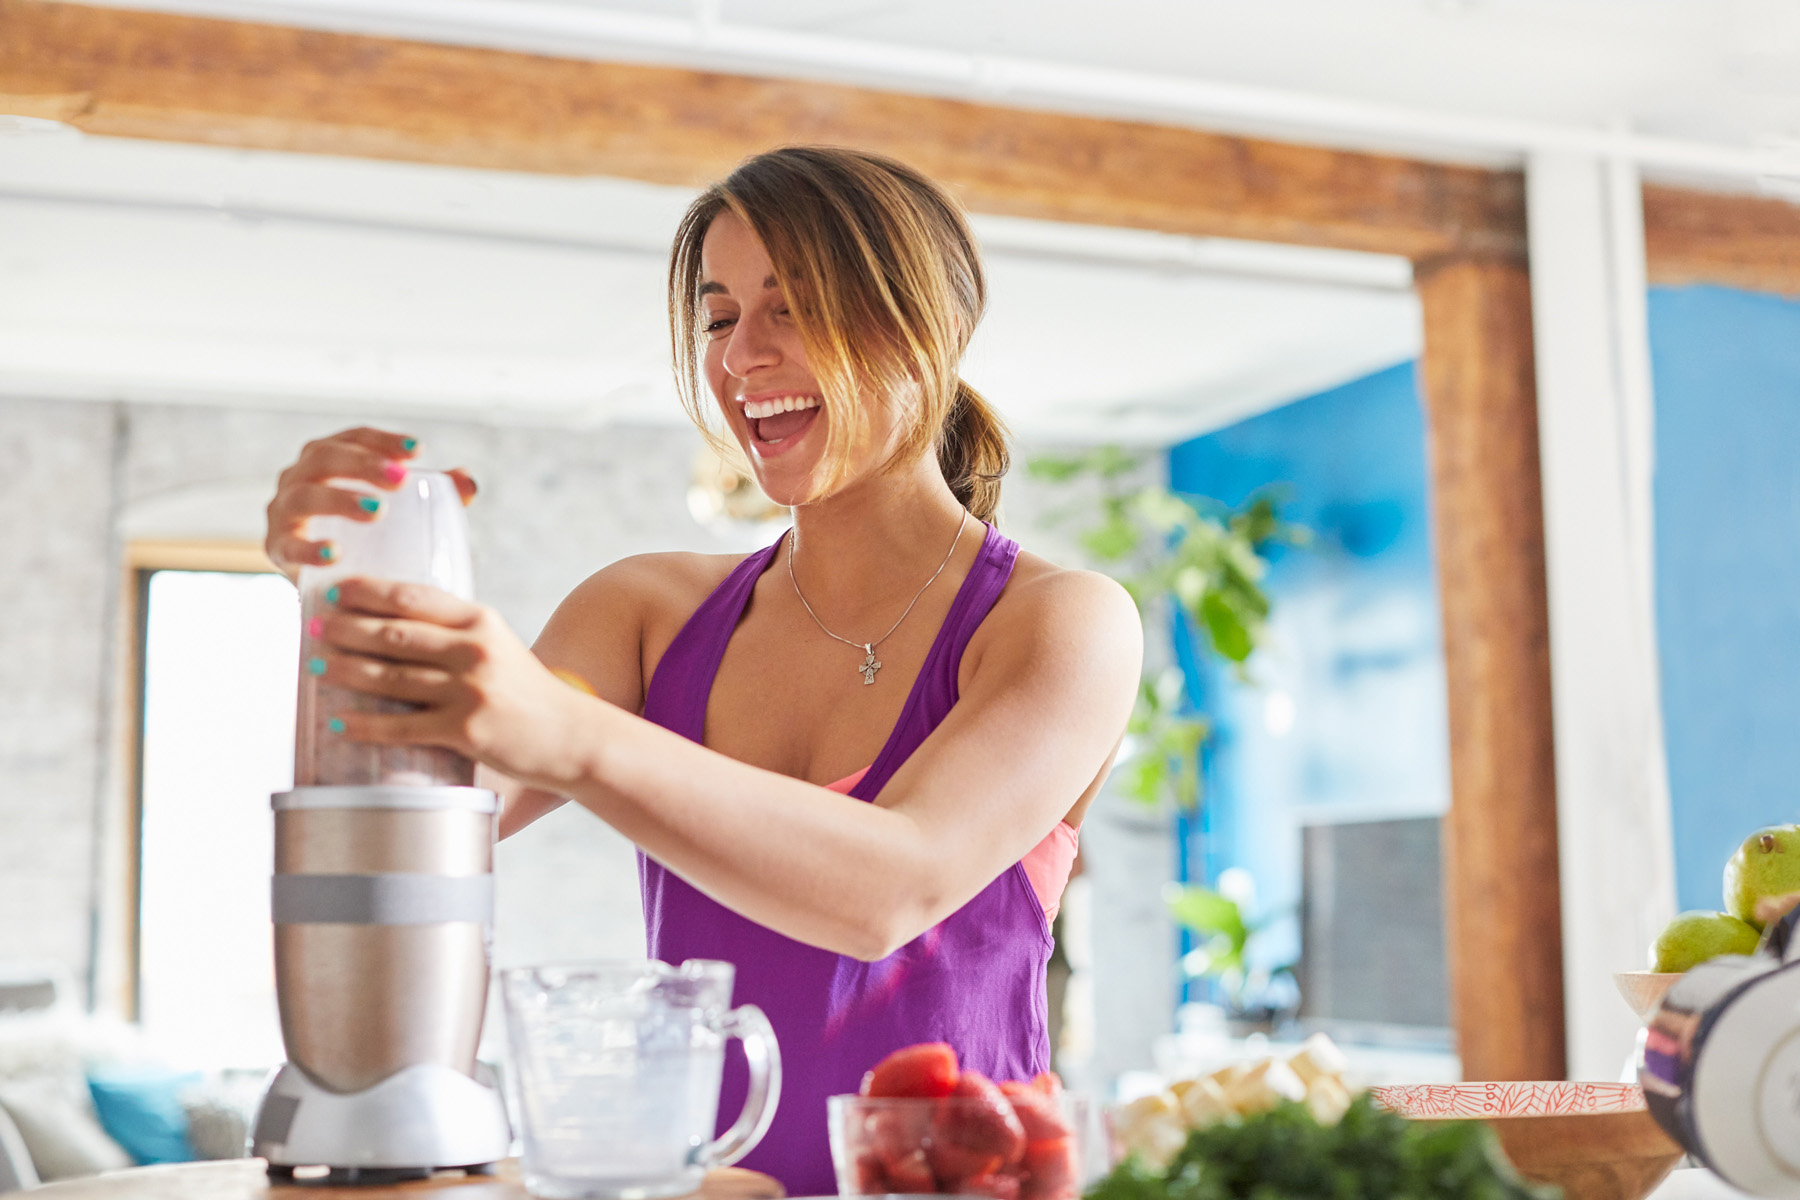 Almond milk smoothies are the perfect post-workout recovery drink